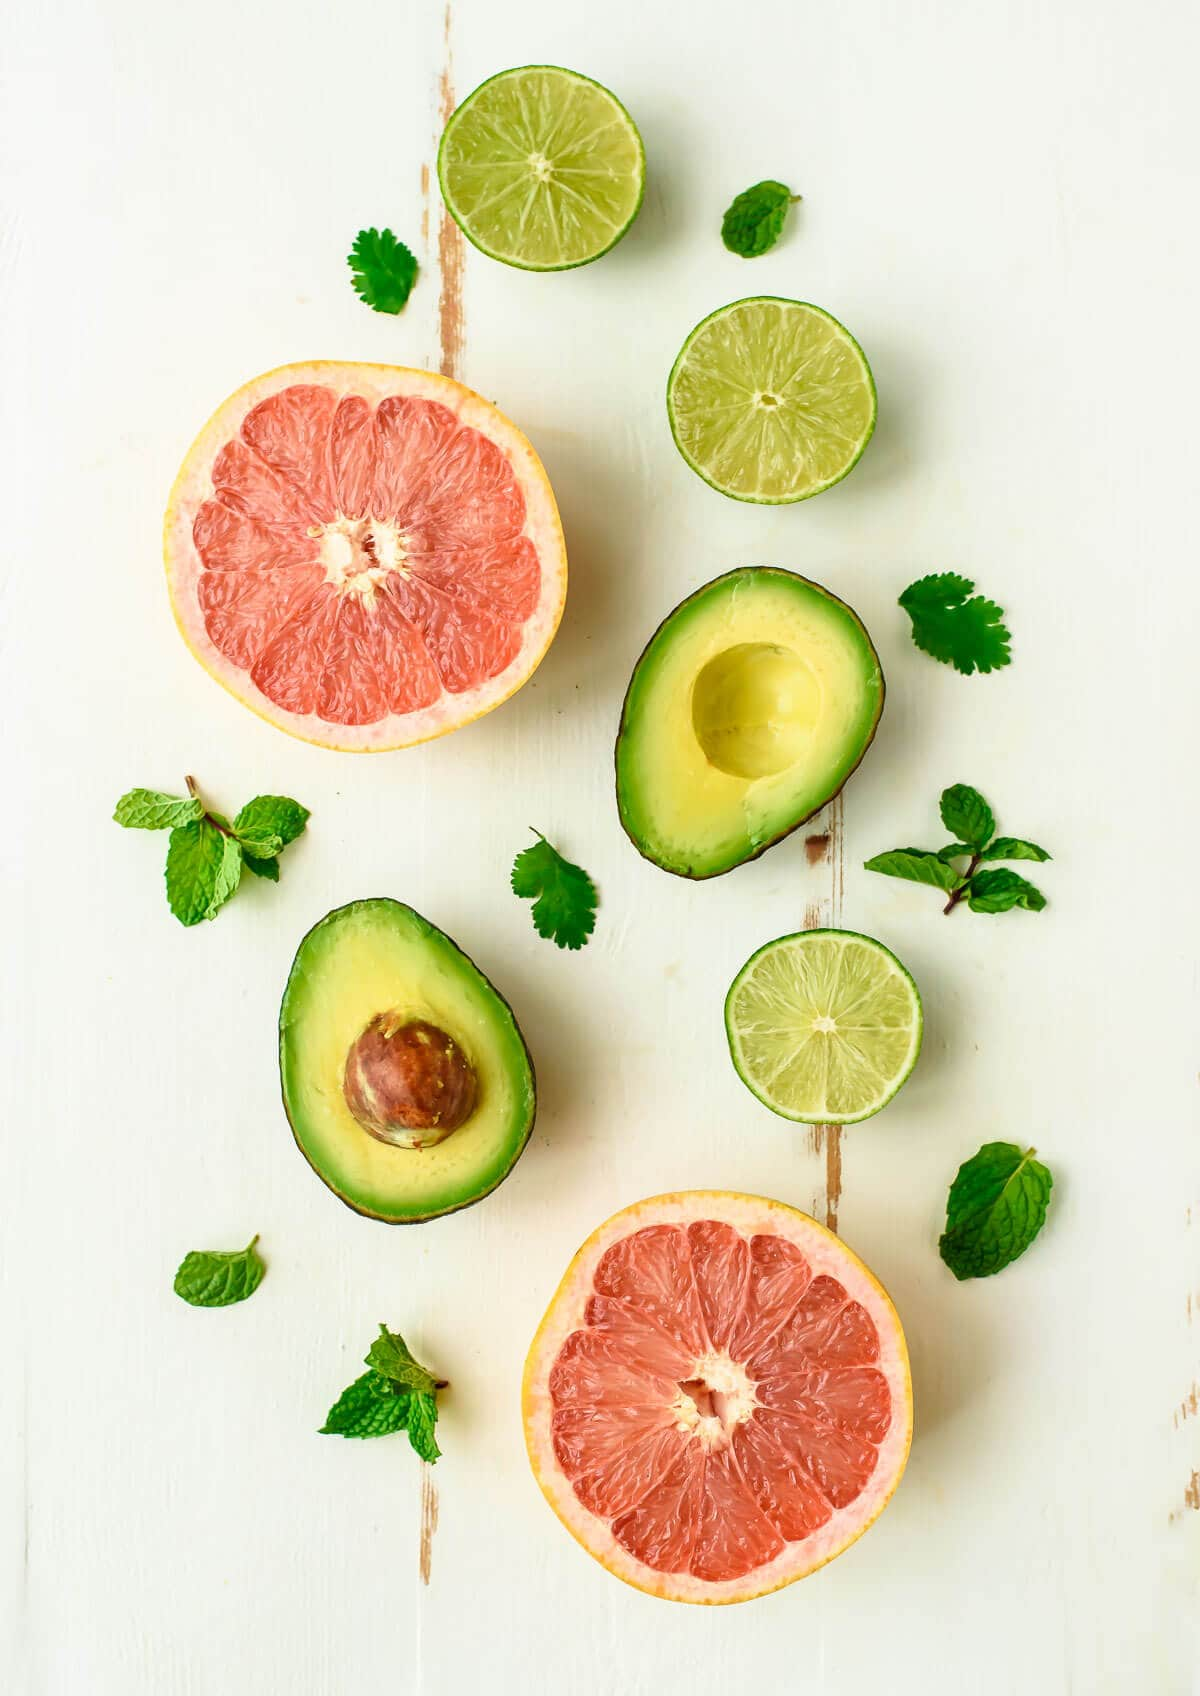 Avocado Grapefruit Salad with Couscous and White Beans. A healthy, filling salad recipe that's perfect any time of day.